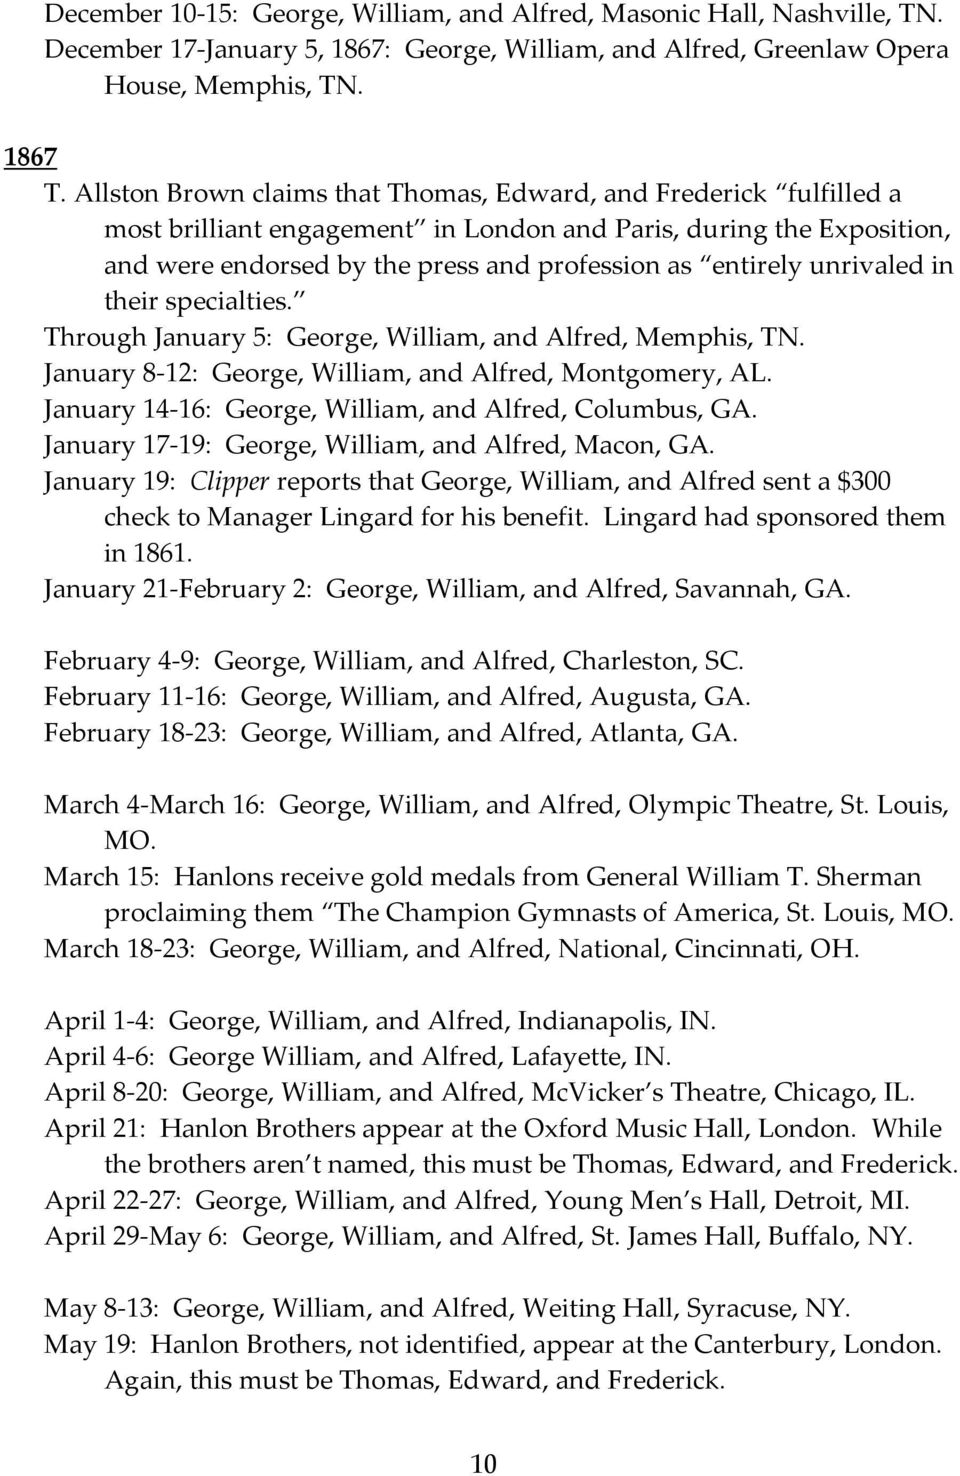 unrivaled in their specialties. Through January 5: George, William, and Alfred, Memphis, TN. January 8-12: George, William, and Alfred, Montgomery, AL.